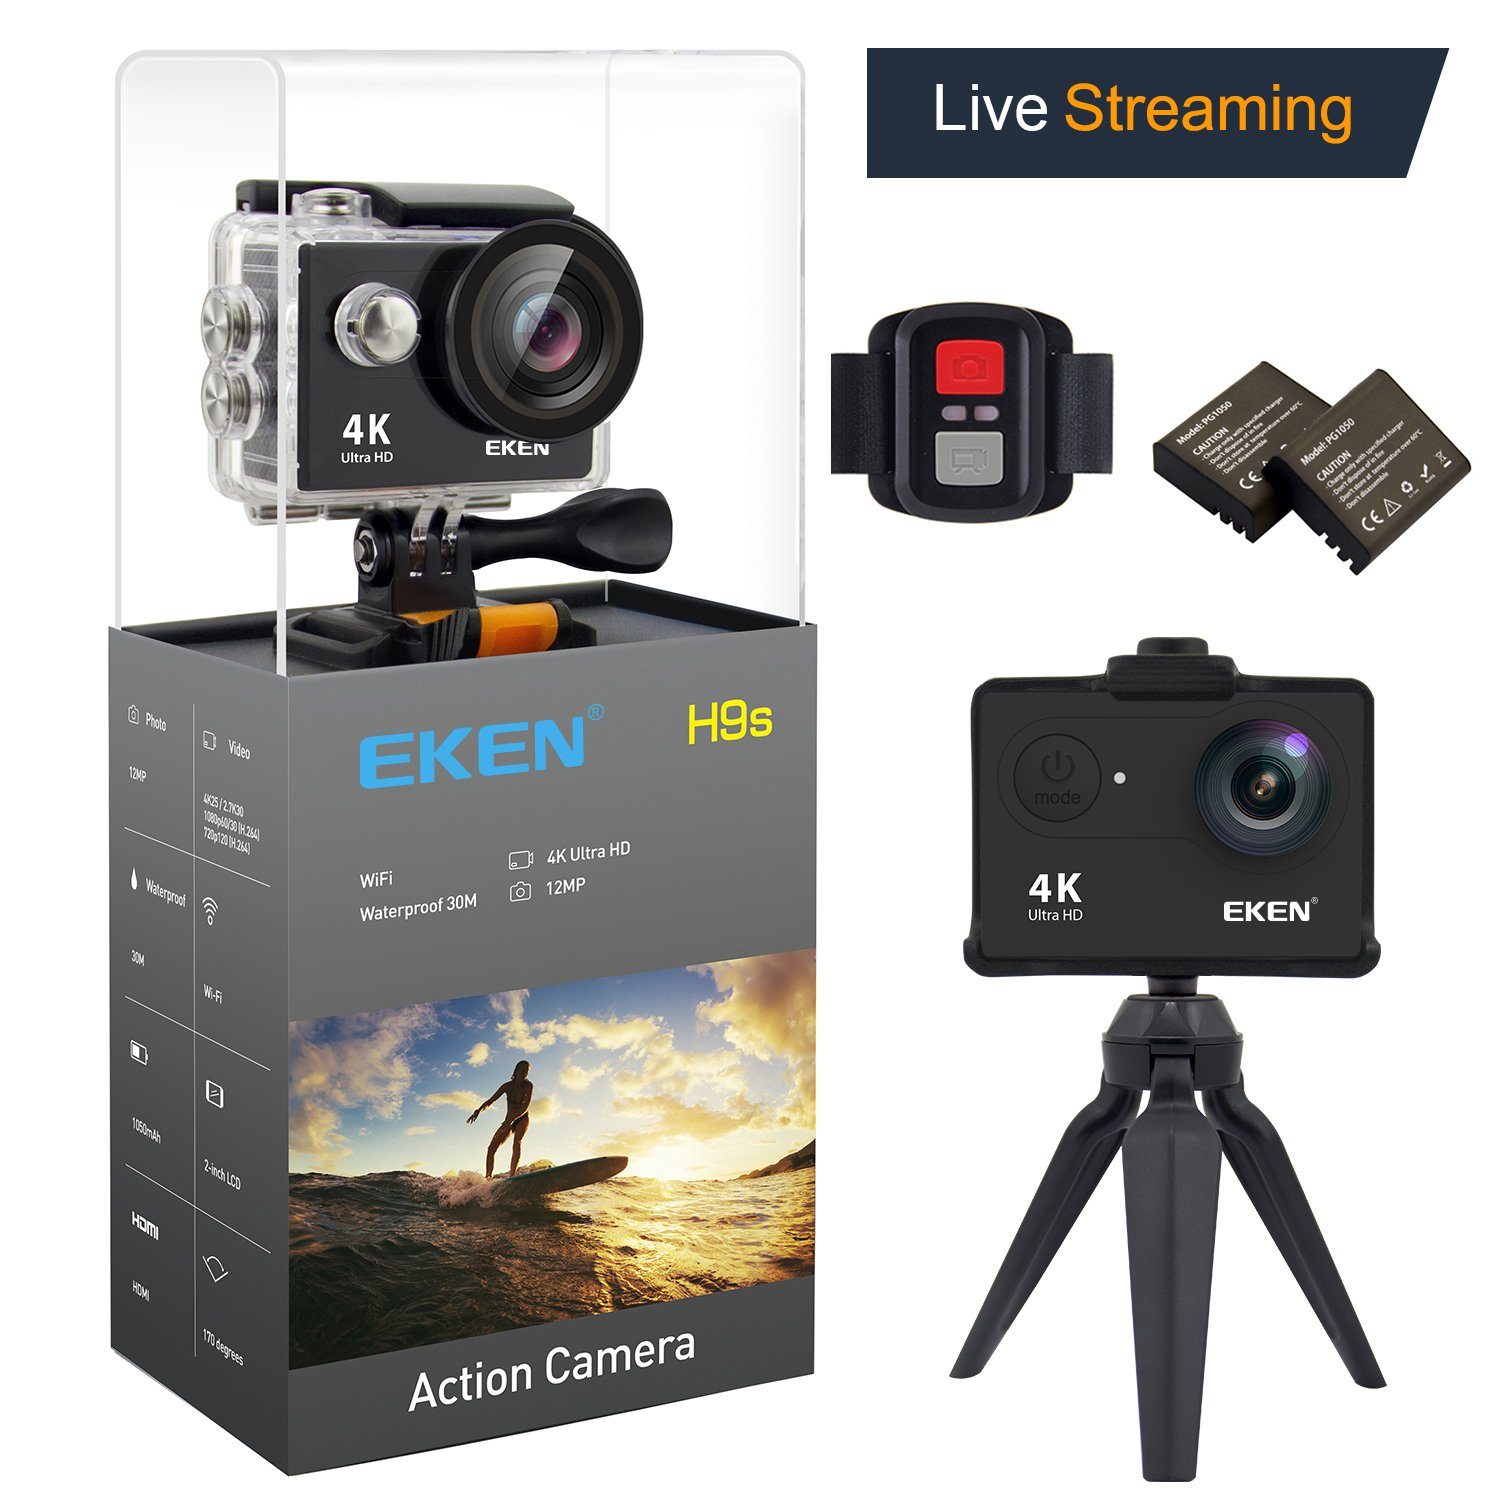 EKEN H9s Action Camera Live Streaming 4K WiFi Ultra HD Waterproof Sports Camera 2 Inch LCD Screen with 2 Rechargeable 1050mAh Batteries and Charging Dock including 11 PCS Mounts